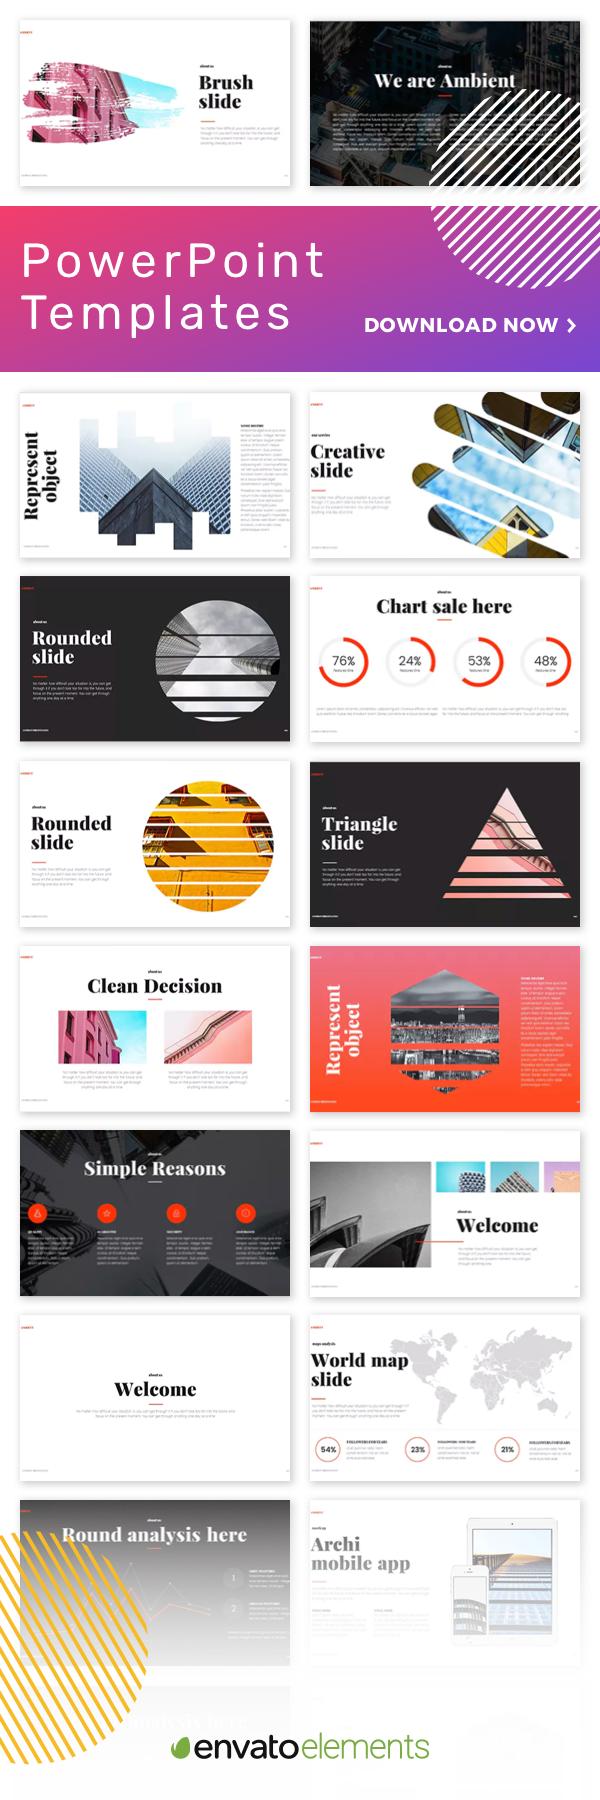 Unlimited downloads of 2018s best powerpoint templates branding unlimited downloads of 2018s best powerpoint templates toneelgroepblik Choice Image